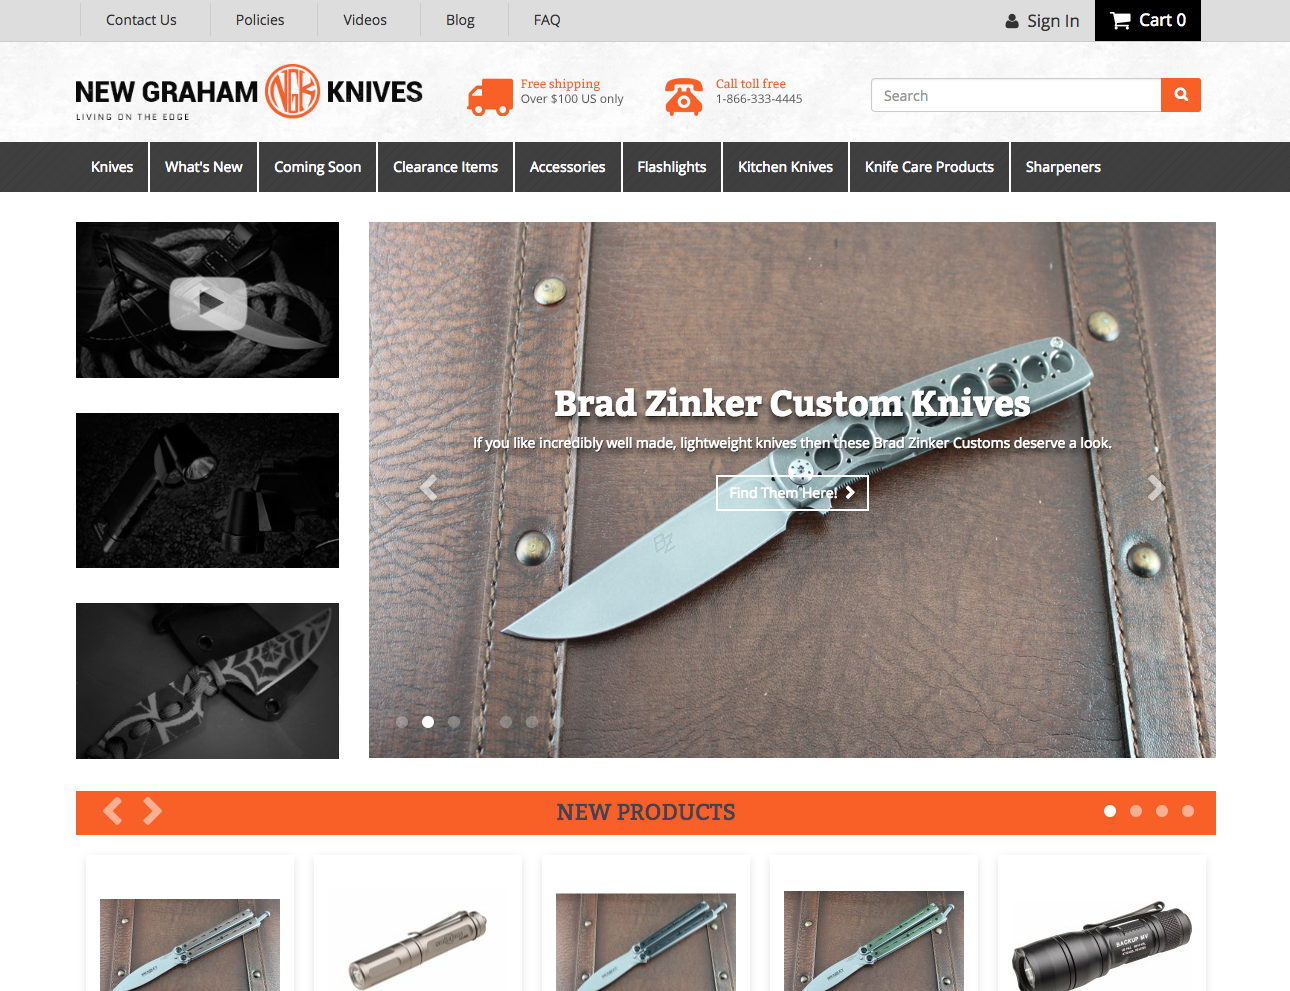 New Graham Knives